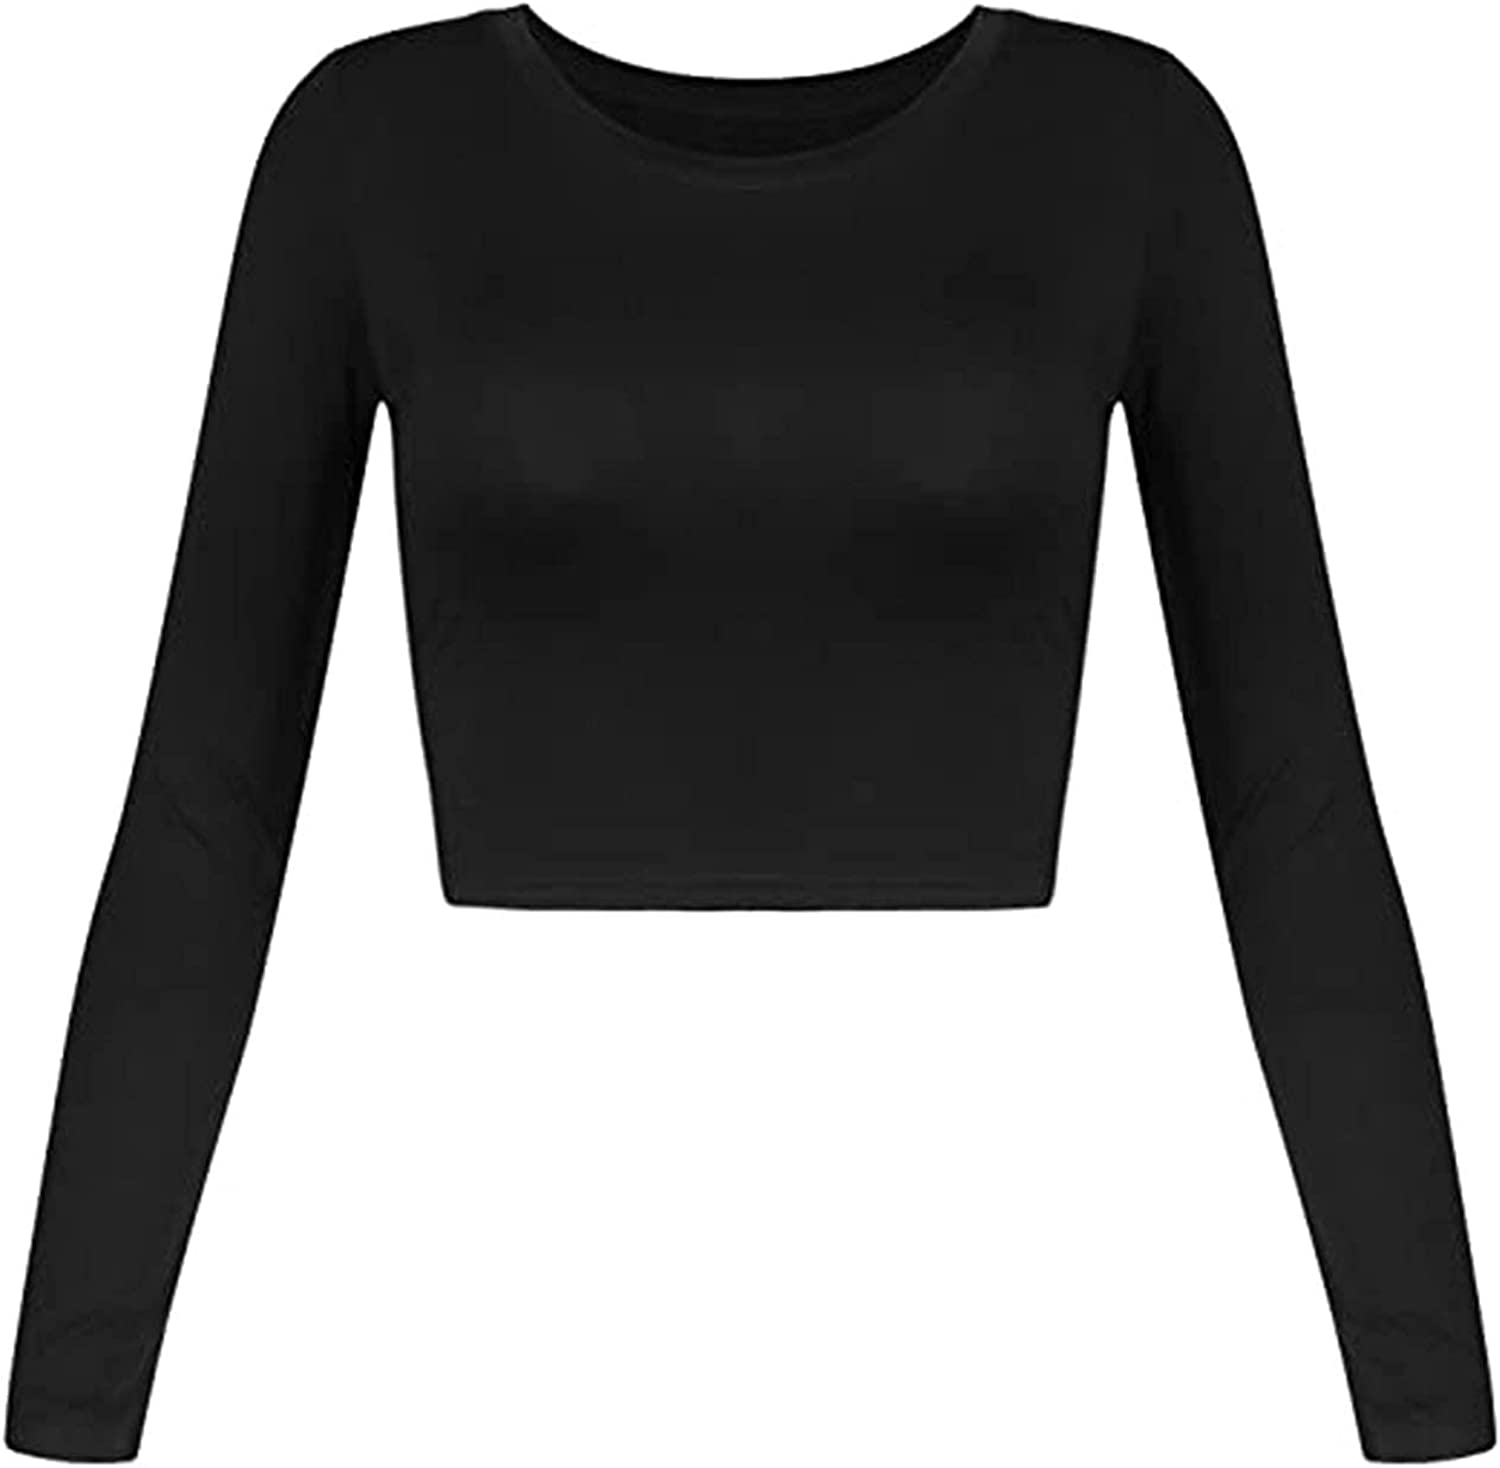 Tops for Woman Casual Long Sleeve Crewneck S Solid Translated Cropped Basic Sales results No. 1